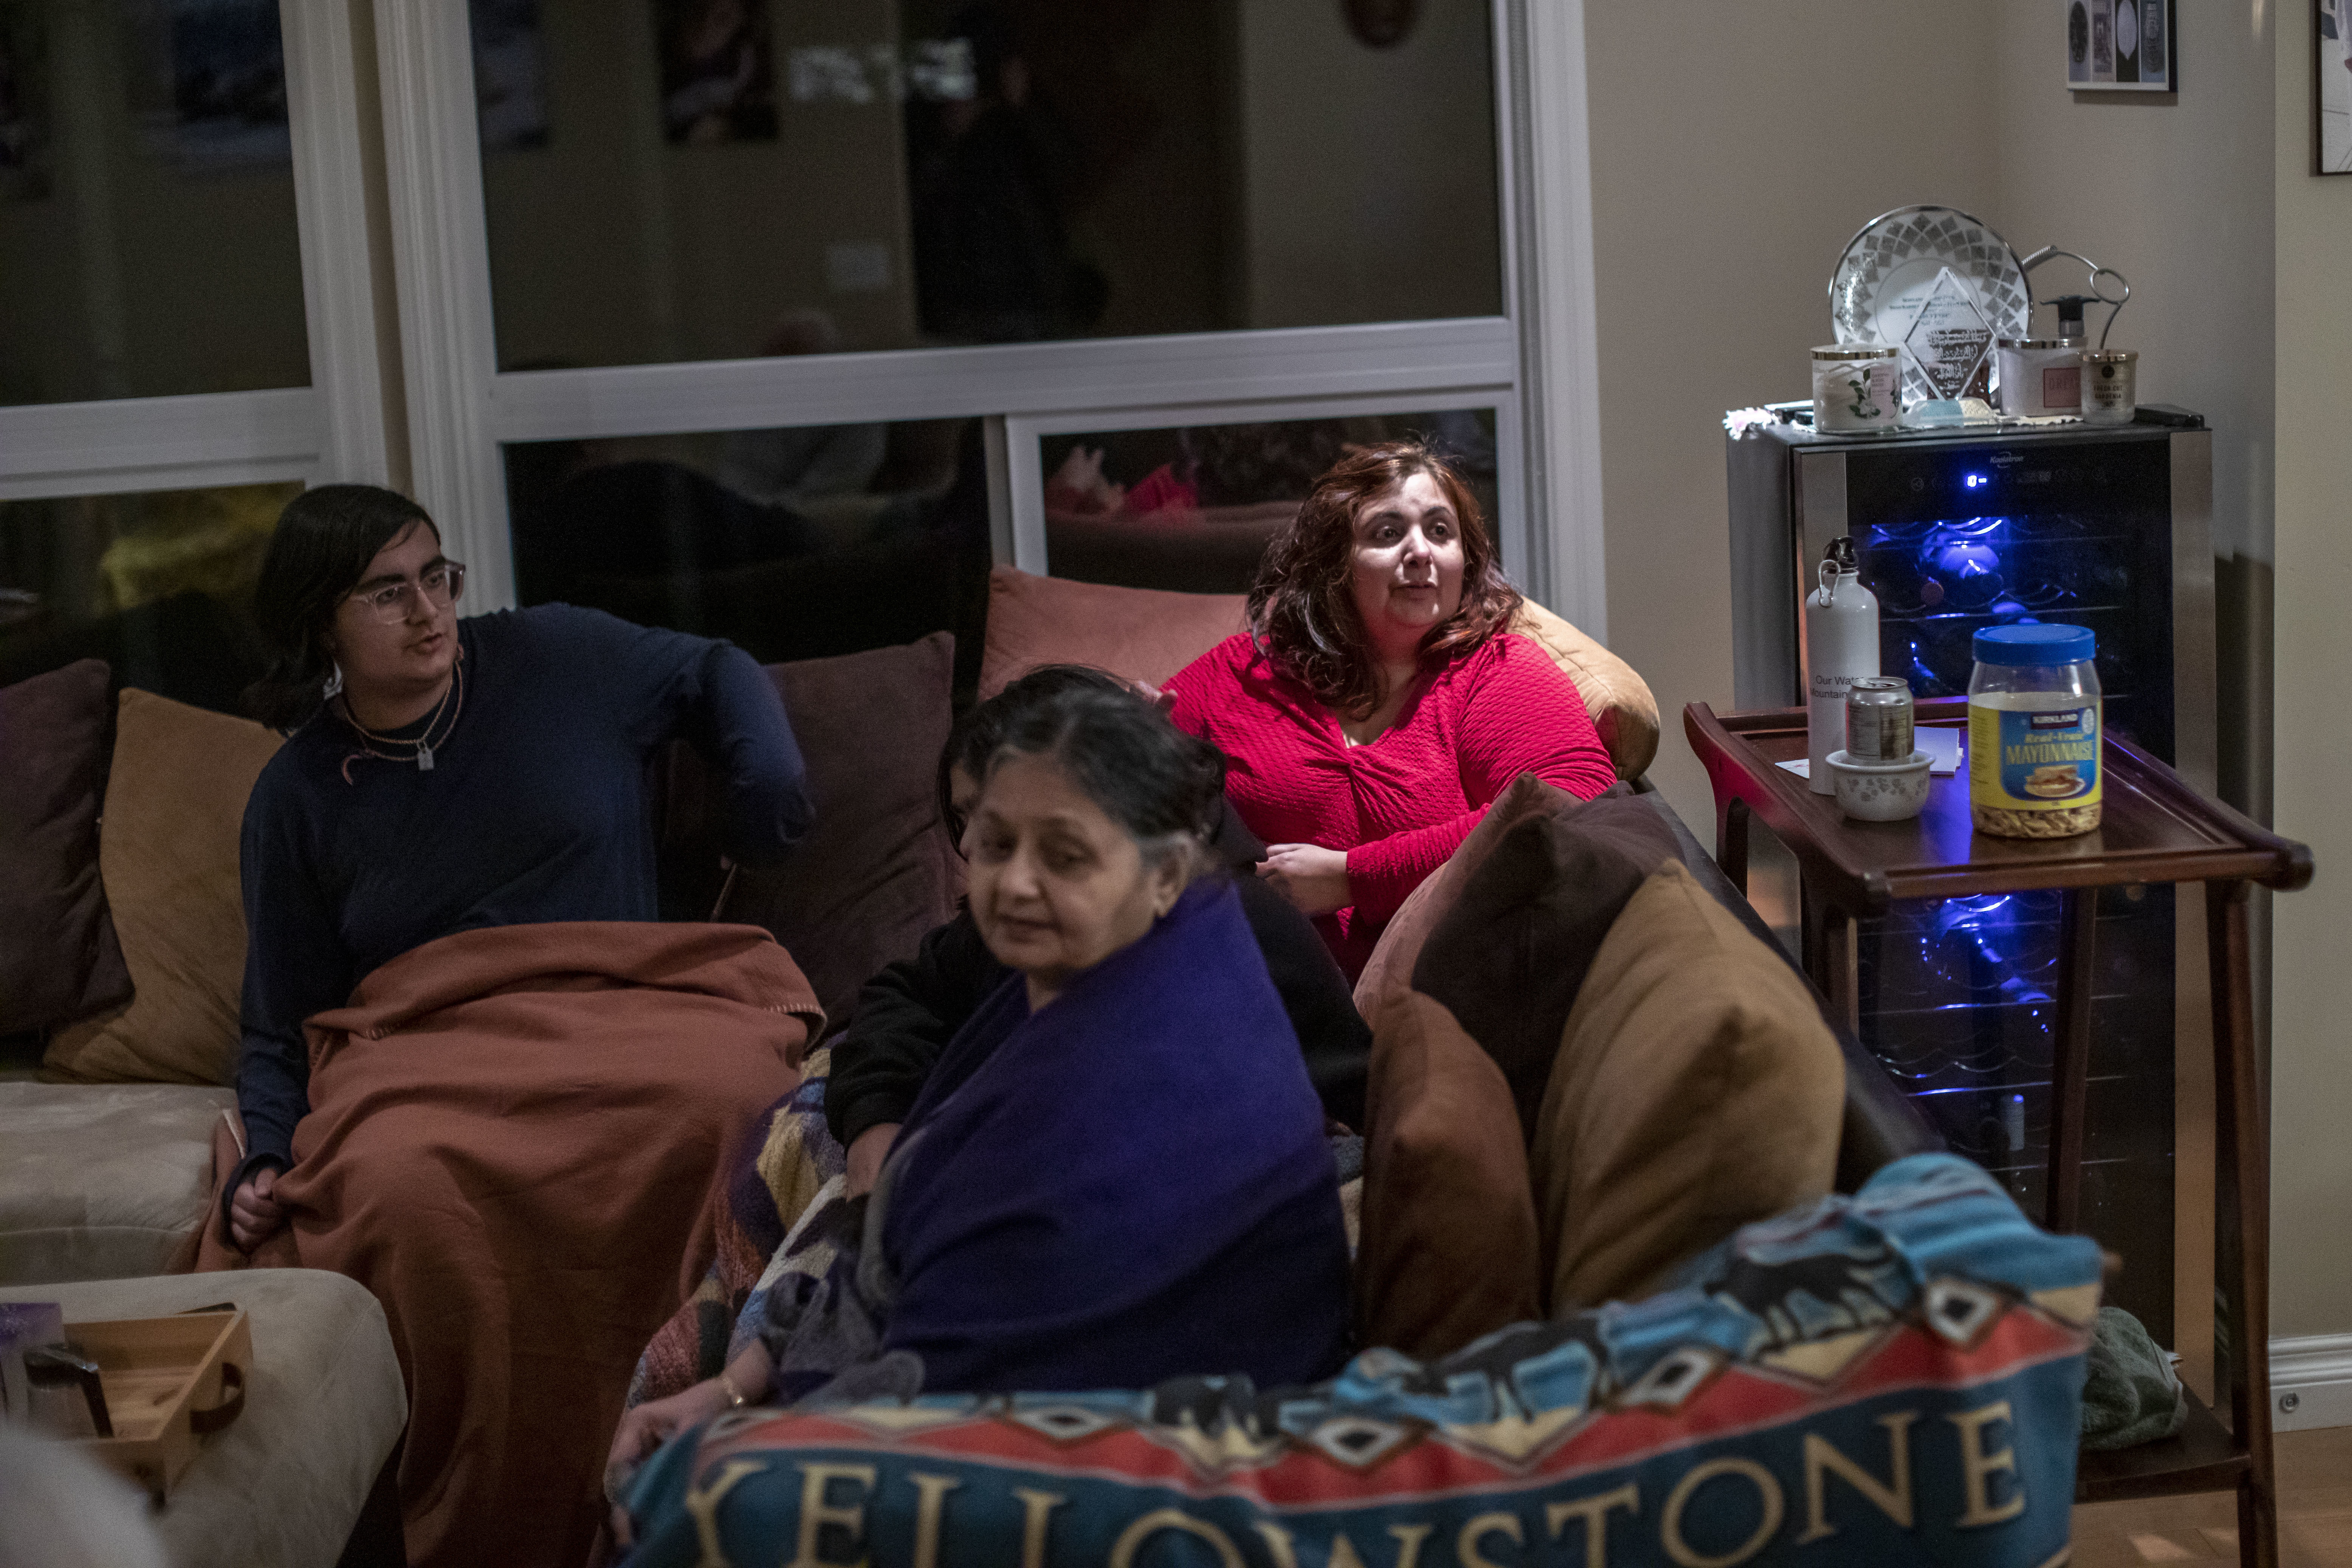 Lakhani says her family regularly discusses B.C.'s public health measures. 'We talk about how we can do our bit for keeping the community healthy.' (Ben Nelms/CBC)